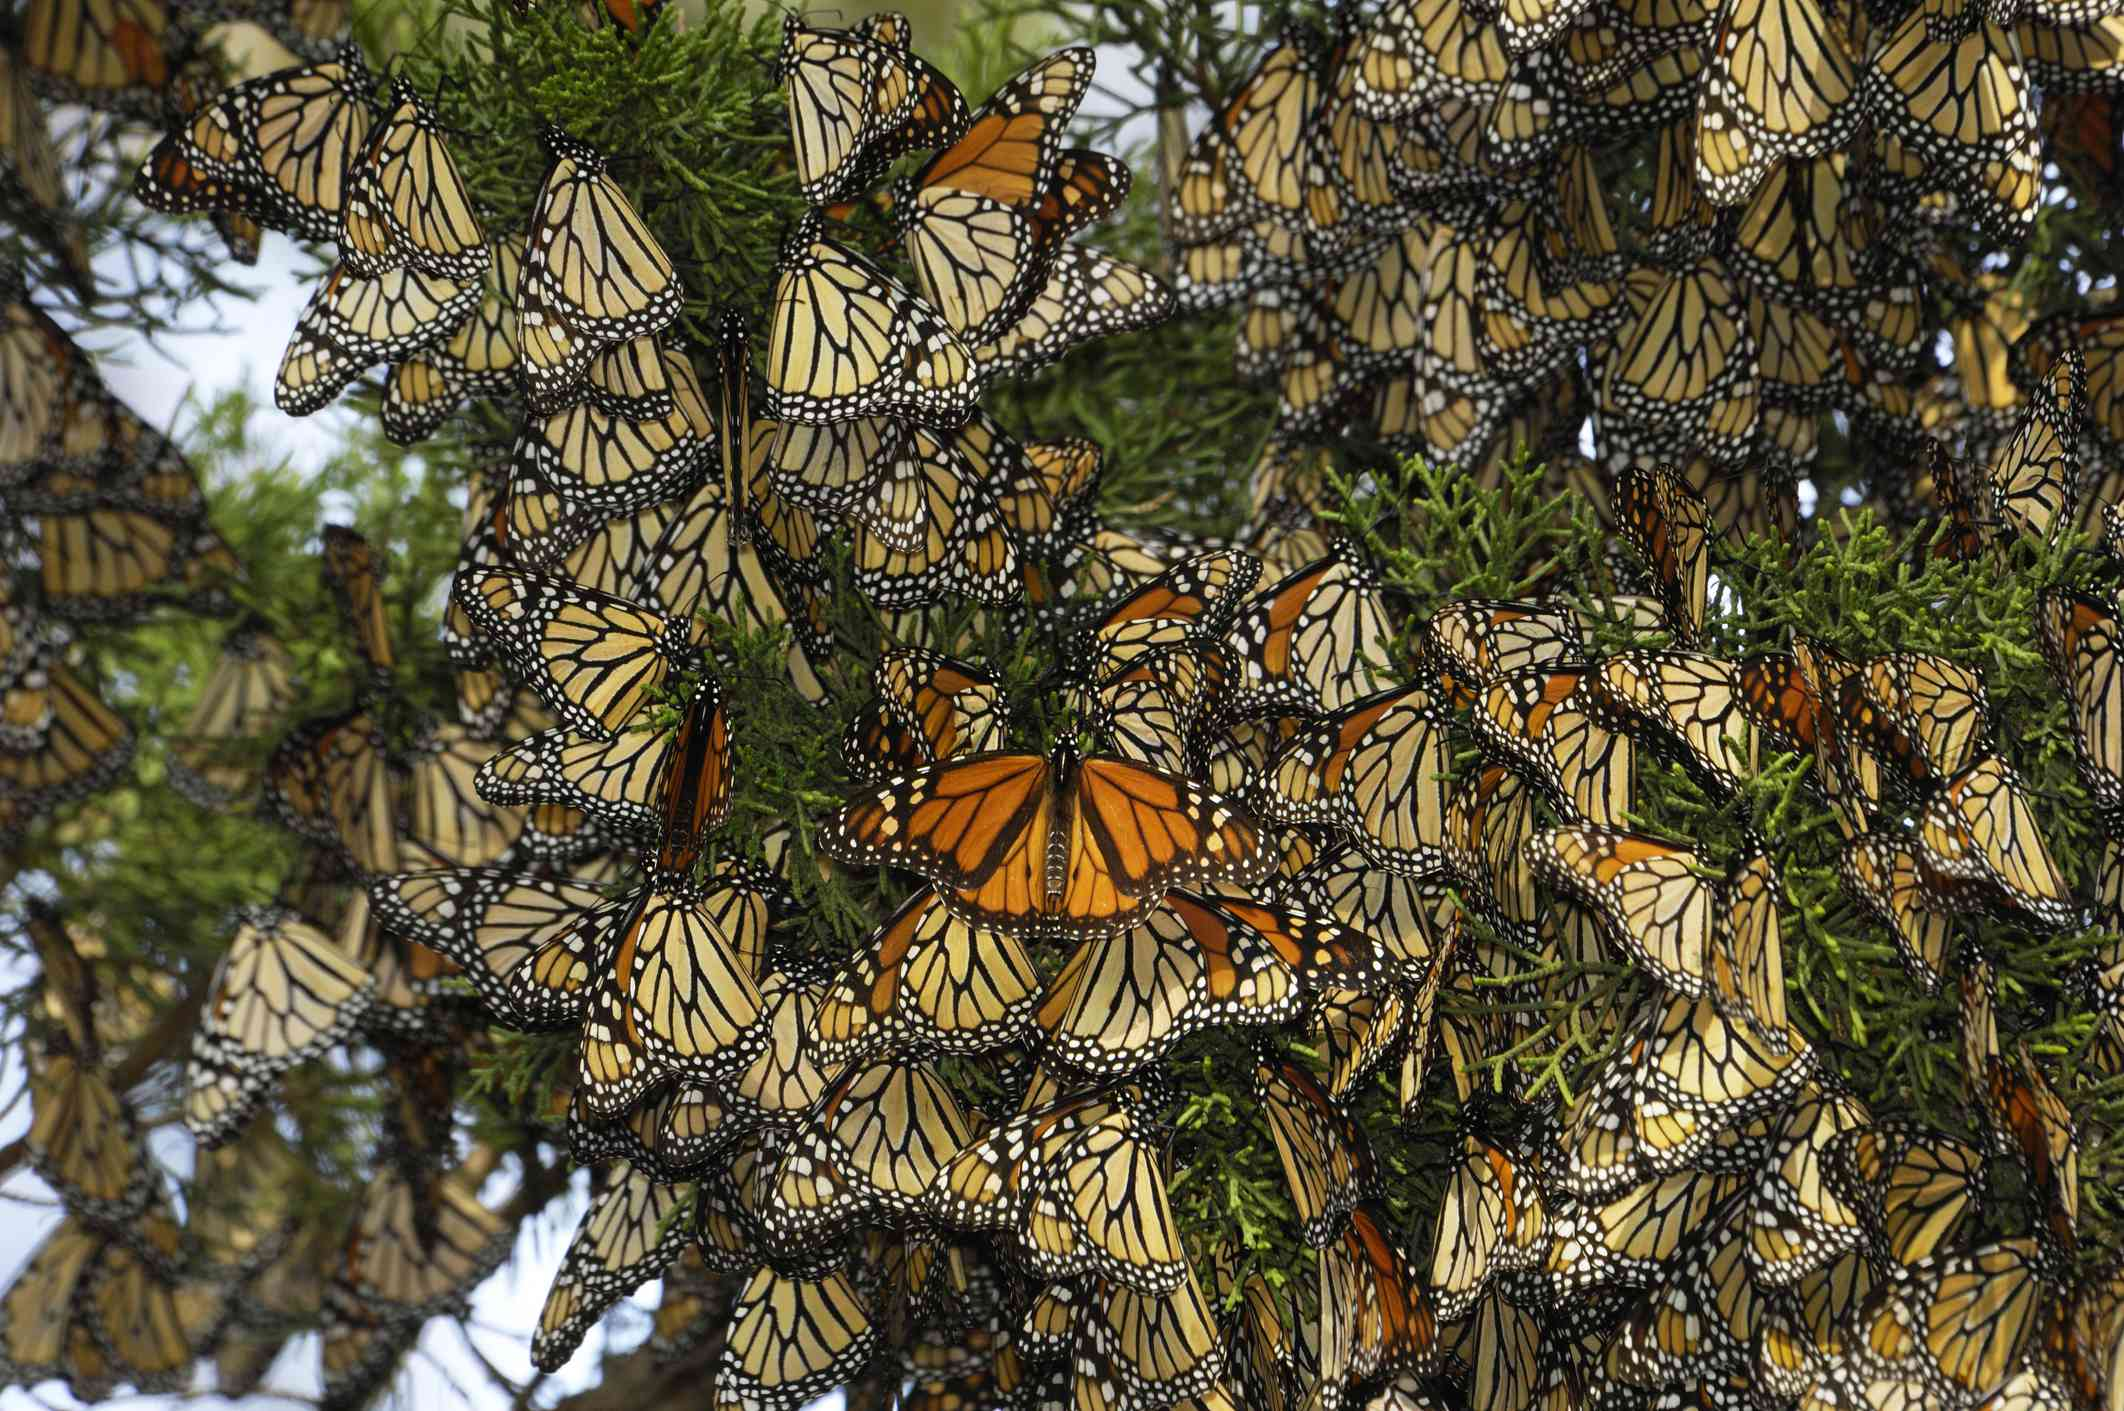 Close-up of Monarch Butterflies on Branch